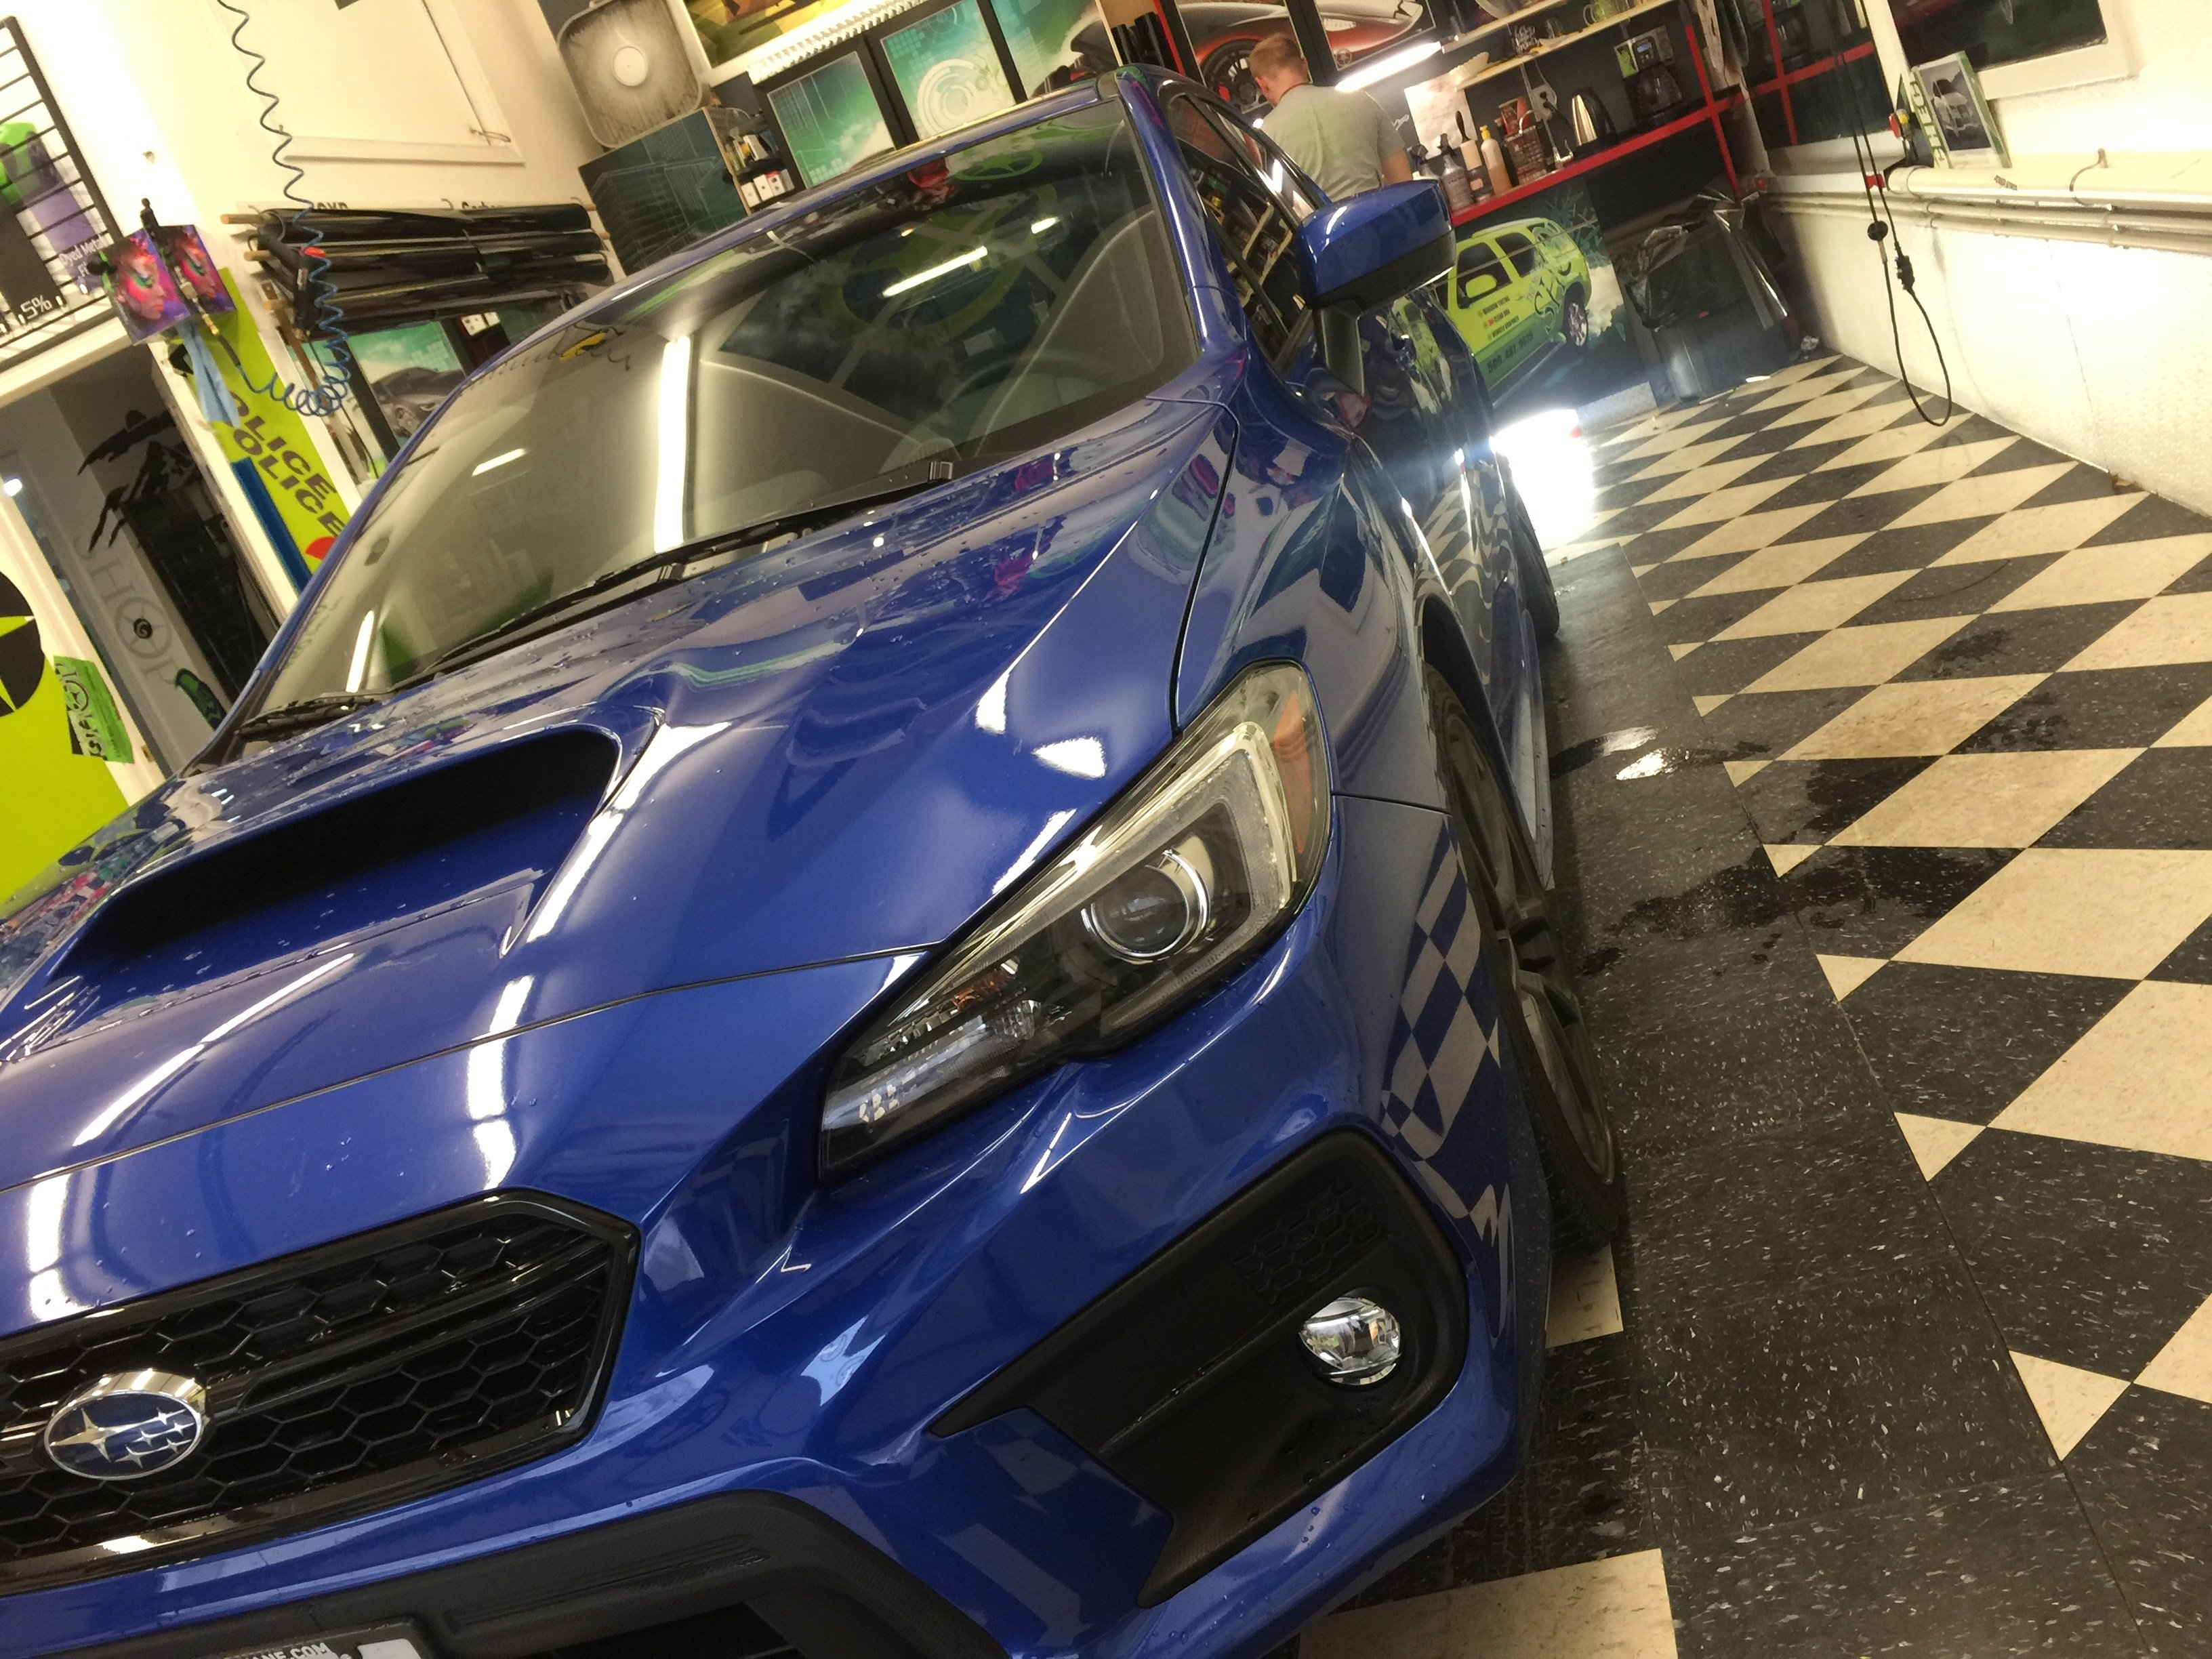 2019_Subaru_WRX_Mind_Blowing_Tint_Package_Visro_Strip_UV_Protection_Film_Sunlight_Blockage_Ceramic_Carbon_Film (5).JPG